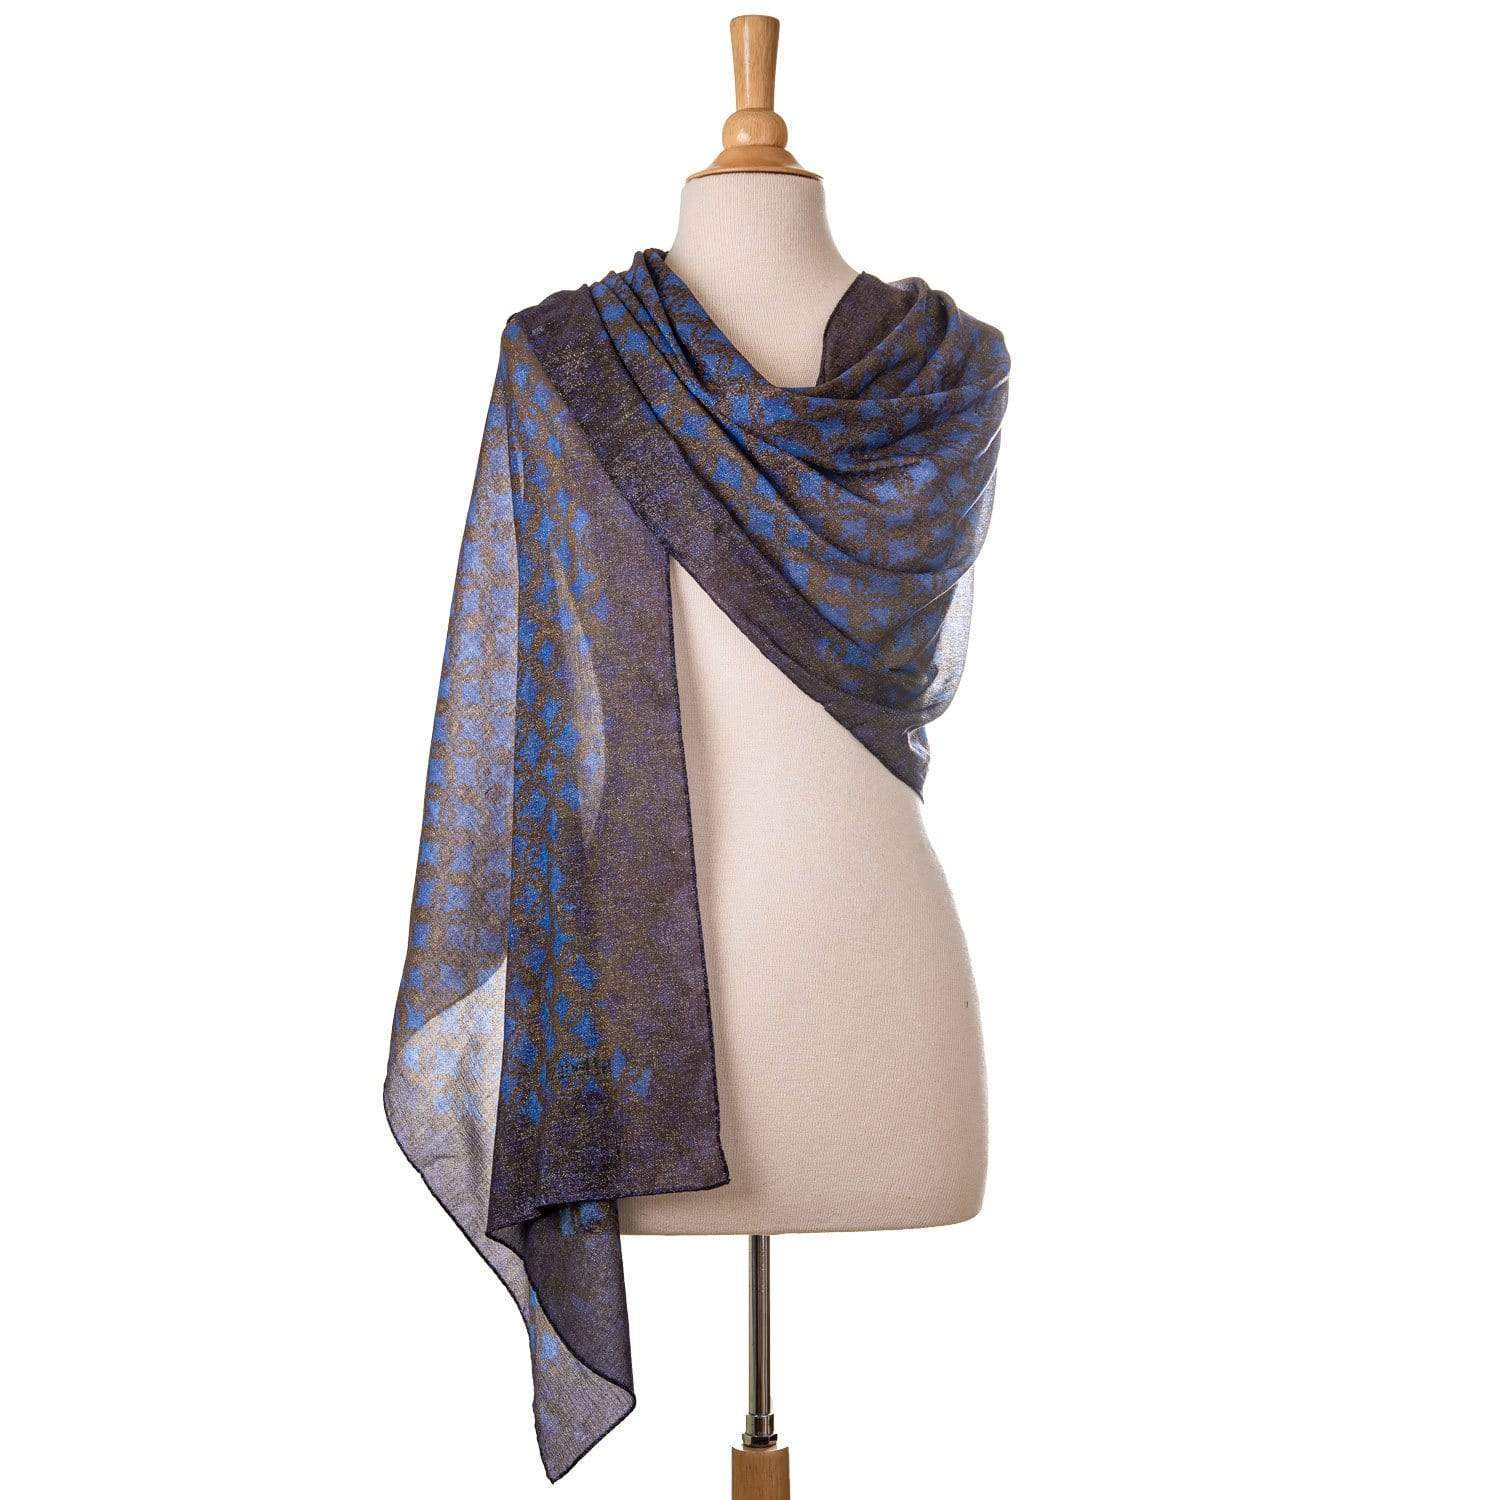 Blue and Gold Scarf - Metallic Lurex Wrap Shawl